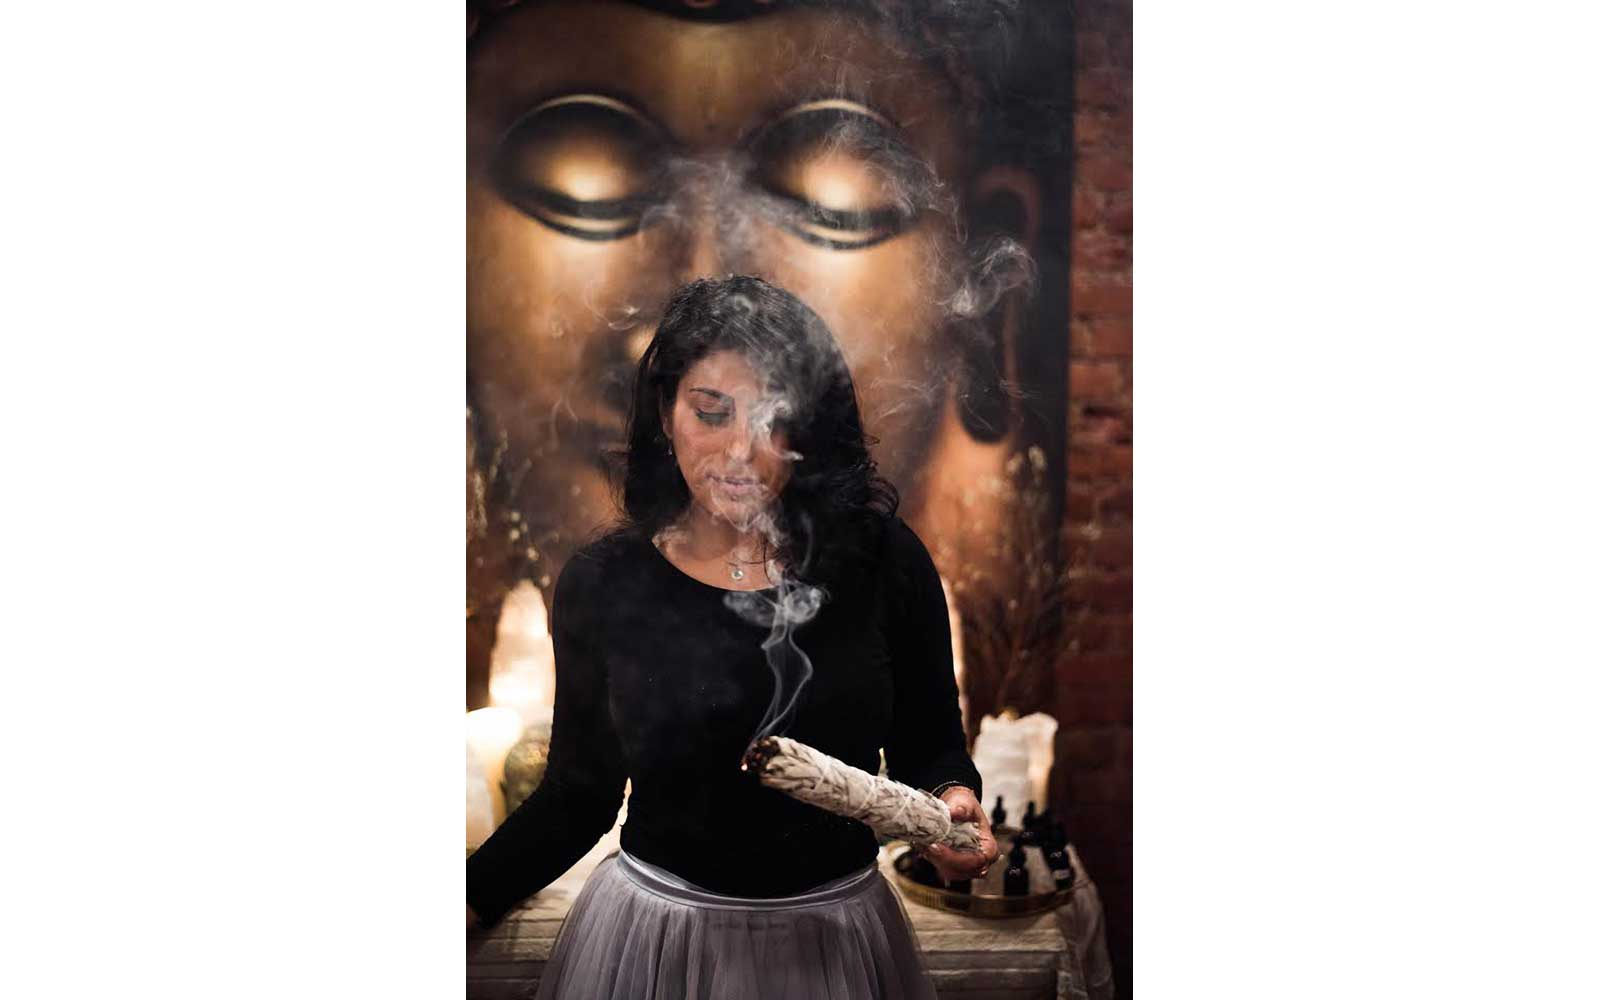 Smudging at the Four Seasons